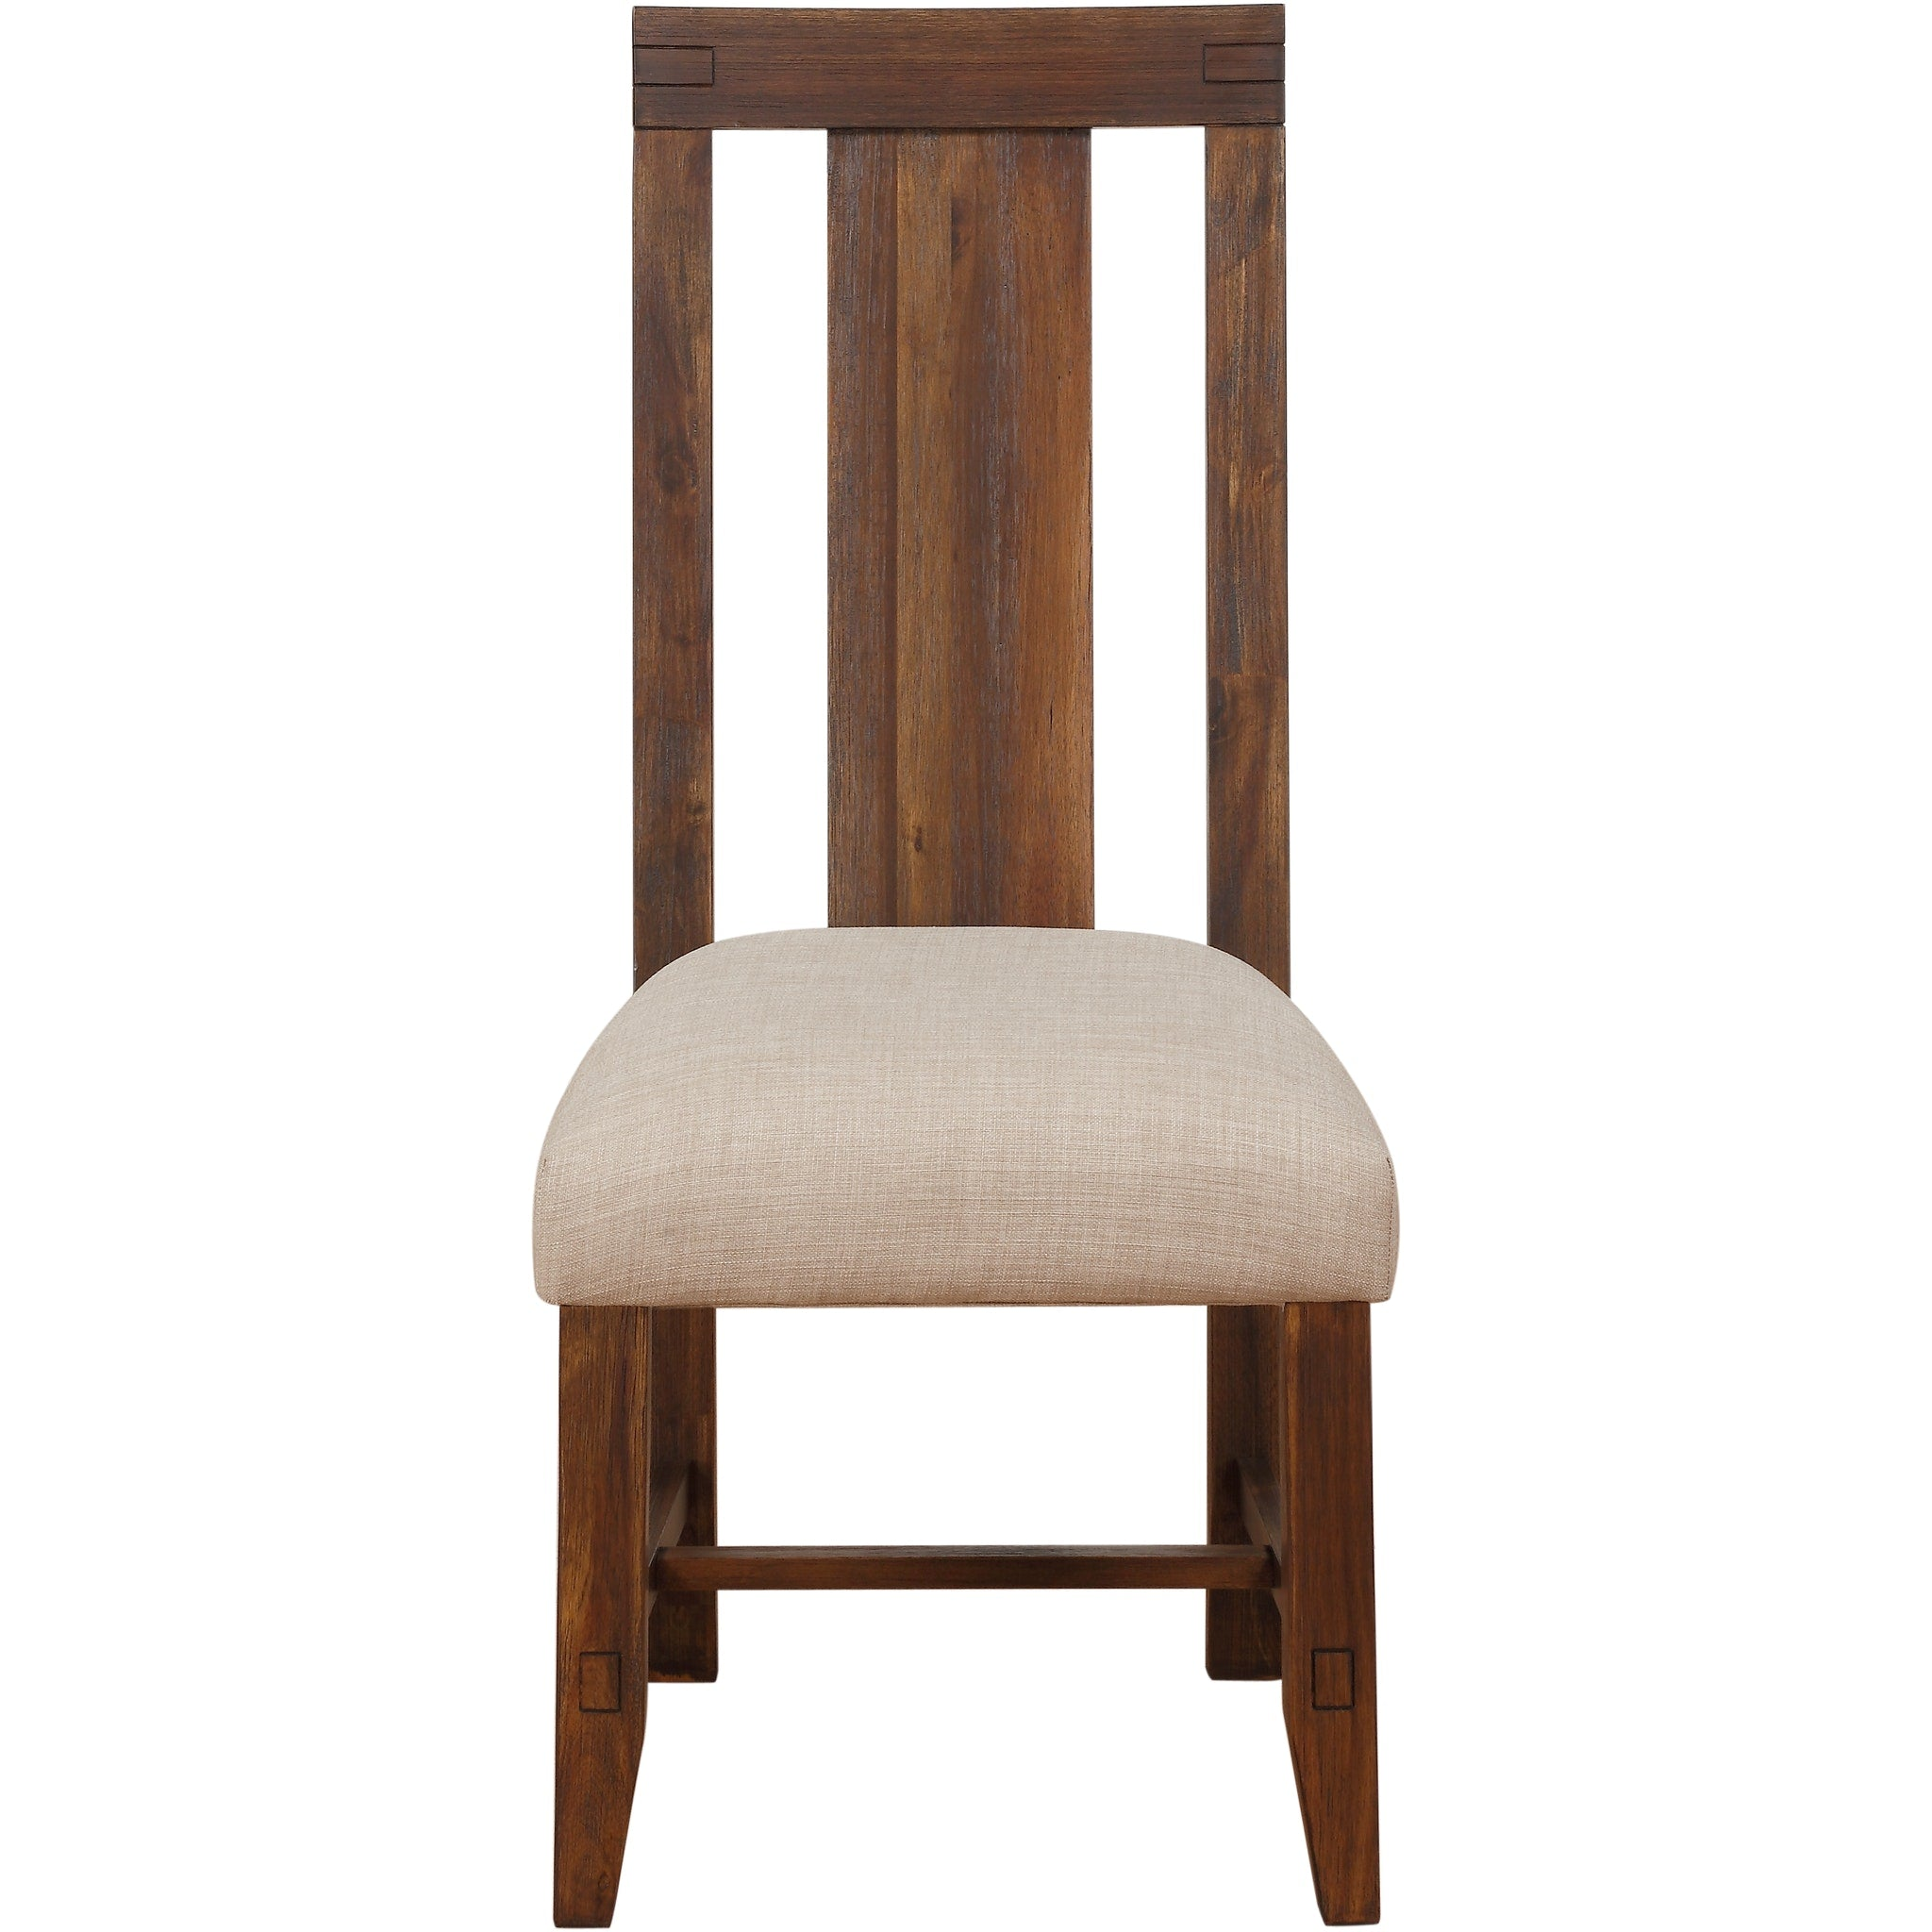 Meadow Solid Wood Upholstered Dining Chair in Brick Brown